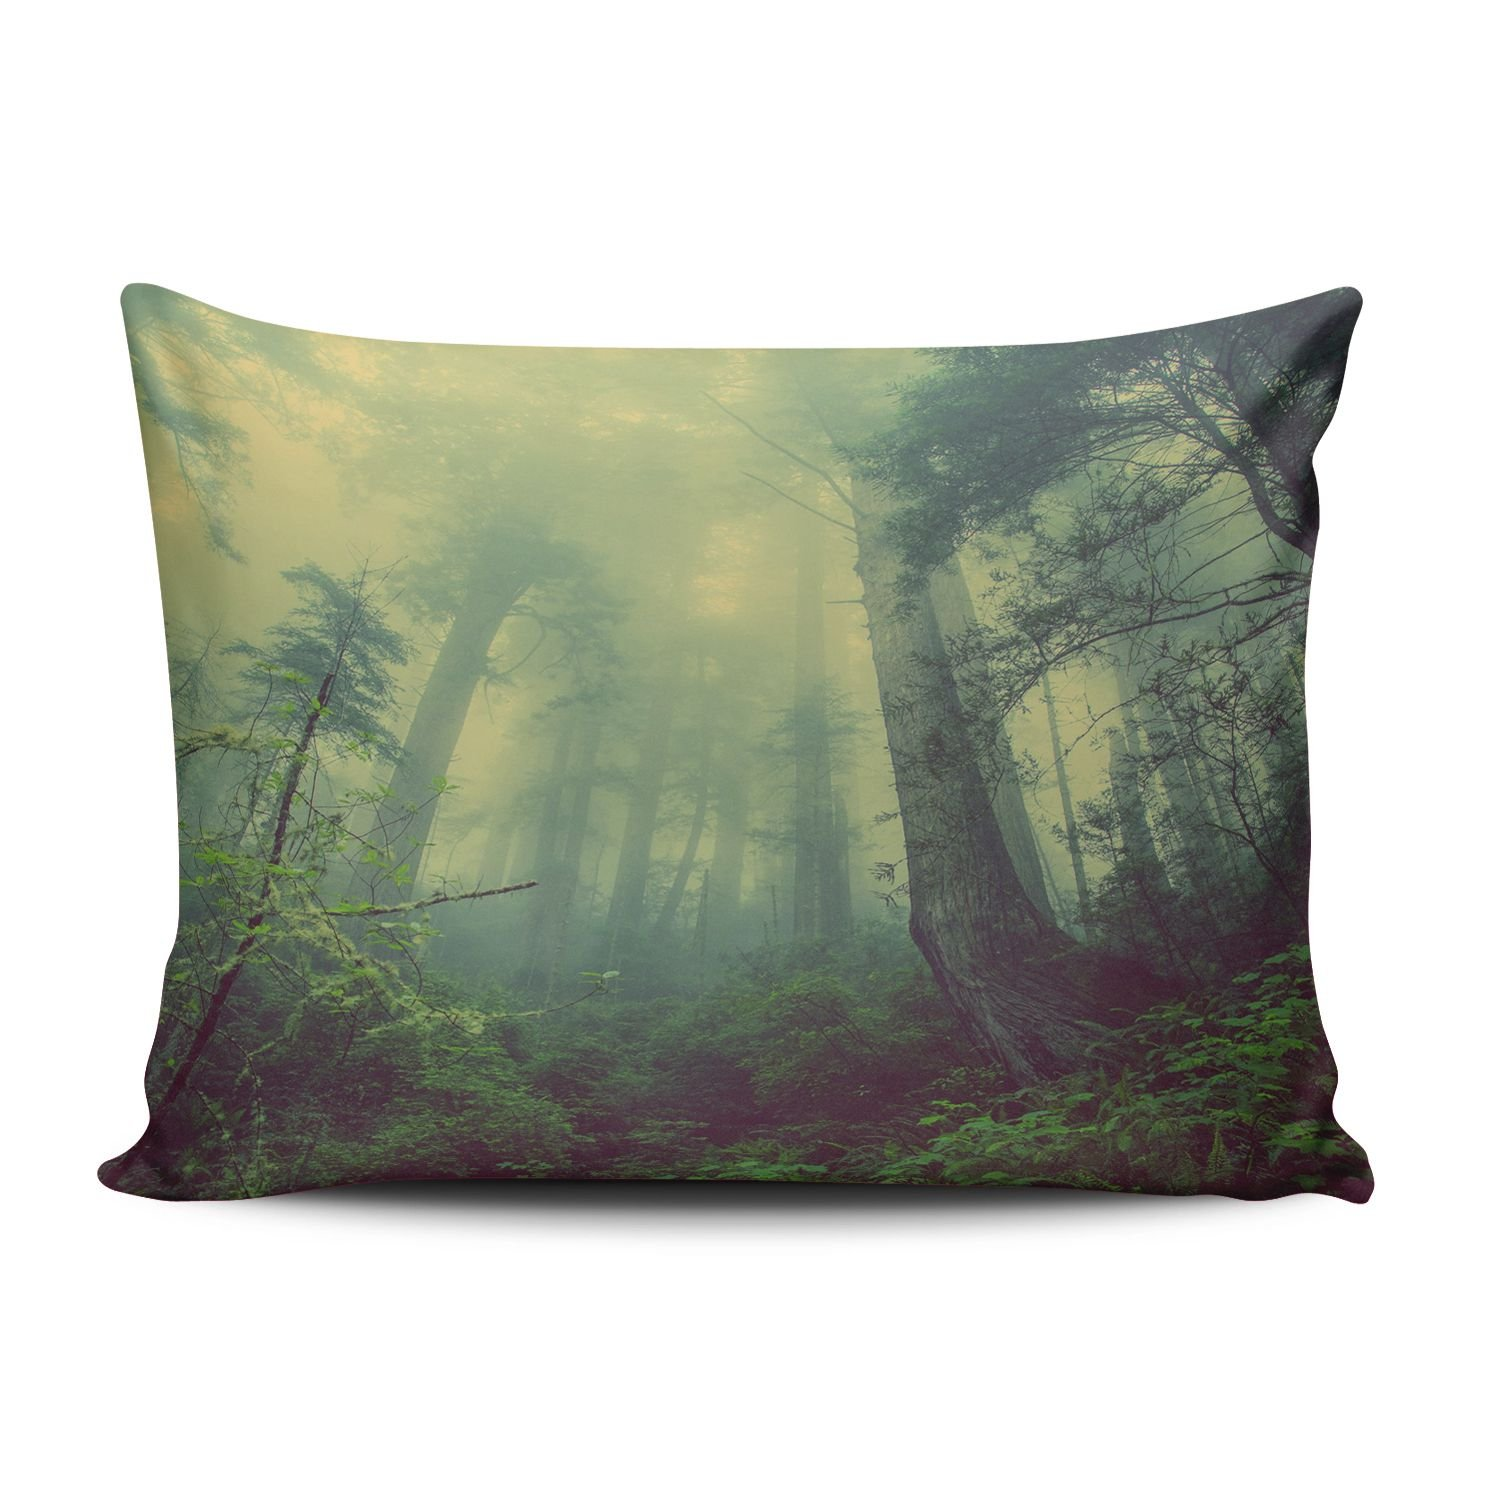 KEIBIKE Personalized Christmas Gift Forest Wood Fog Nature Green Rectangle Decorative Pillowcases Unique Zippered Standard Pillow Covers Cases 20x26 Inches One Sided